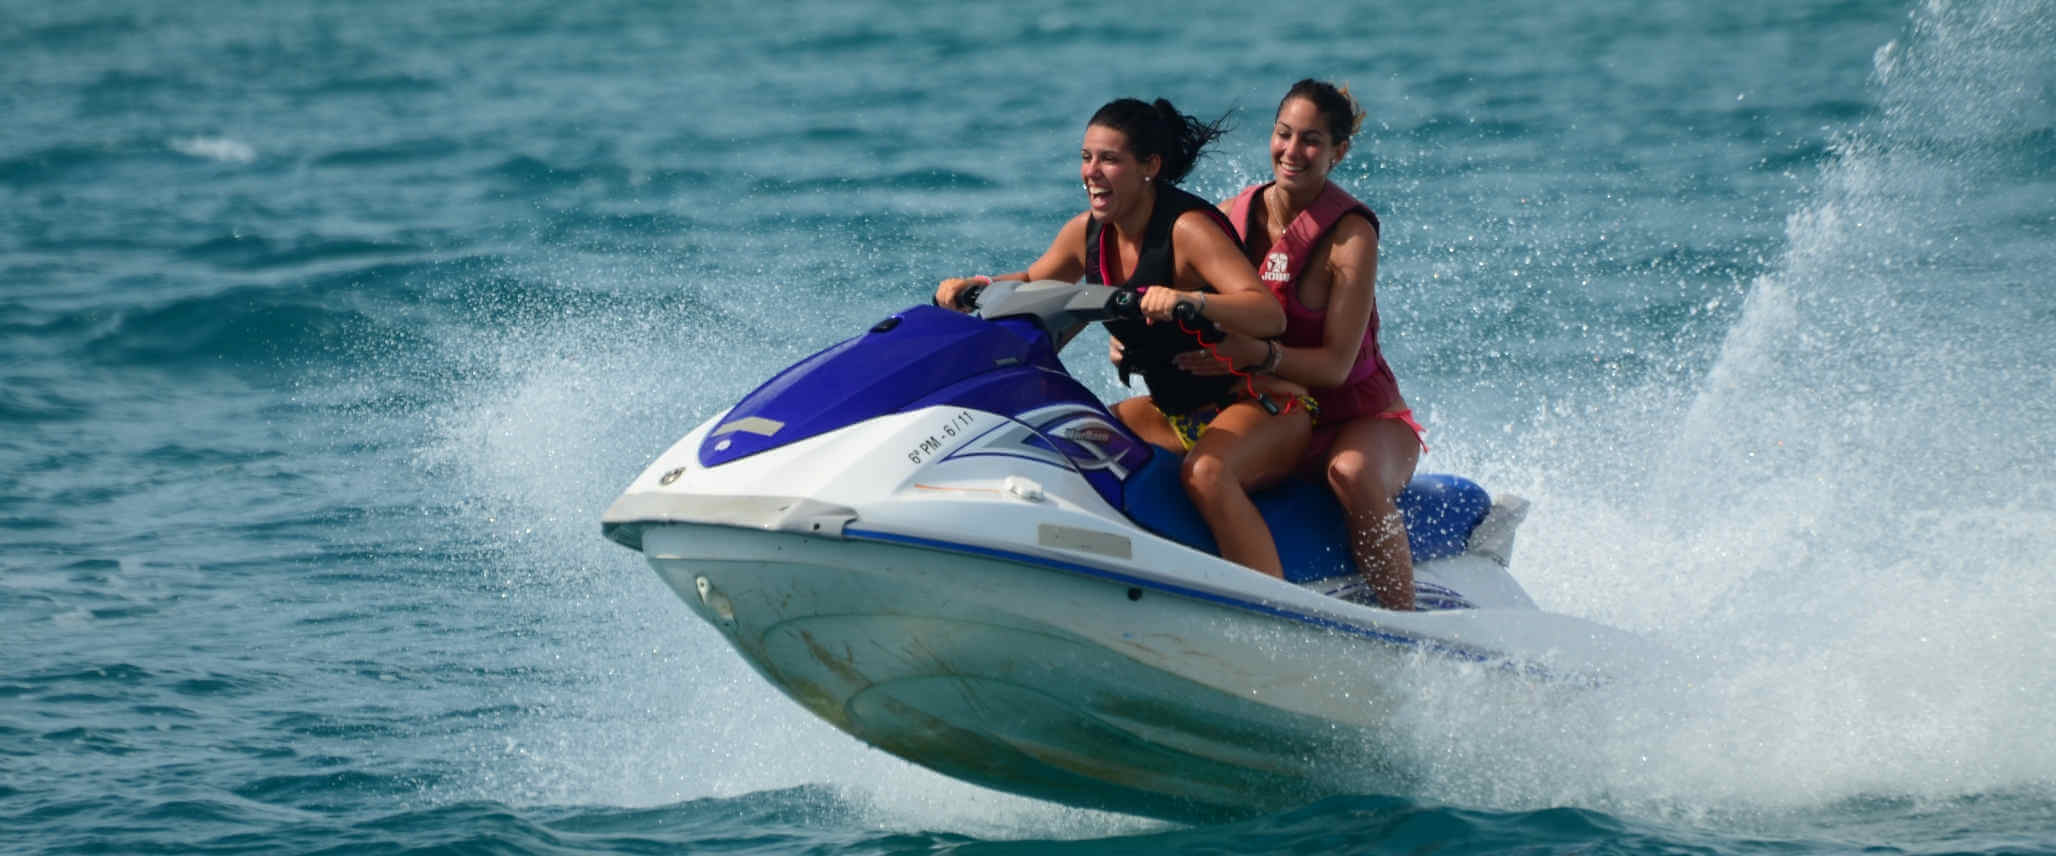 Jetskiing in Costa Blanca